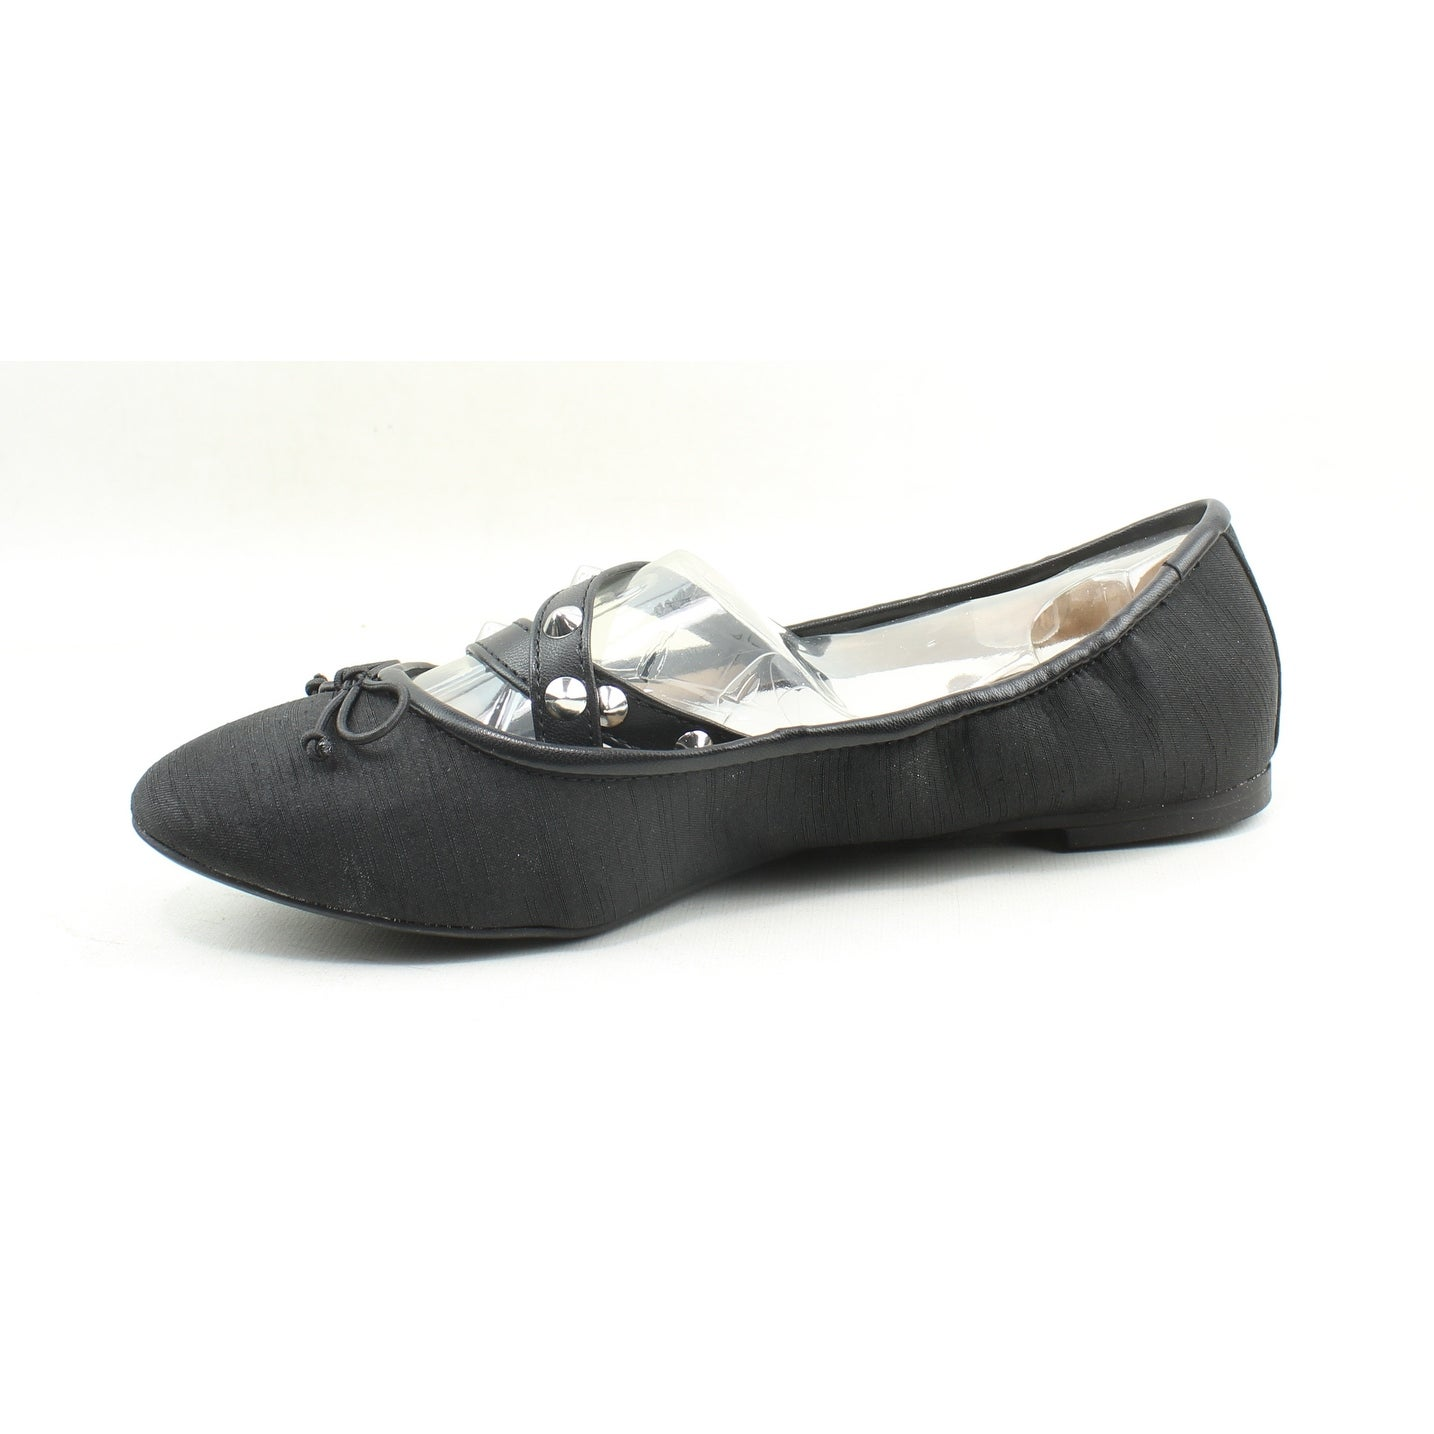 945fb374727b Shop Circus by Sam Edelman Womens Cayenne Black Dupioni Ballet Flats Size 7  - Free Shipping On Orders Over  45 - Overstock.com - 26889906